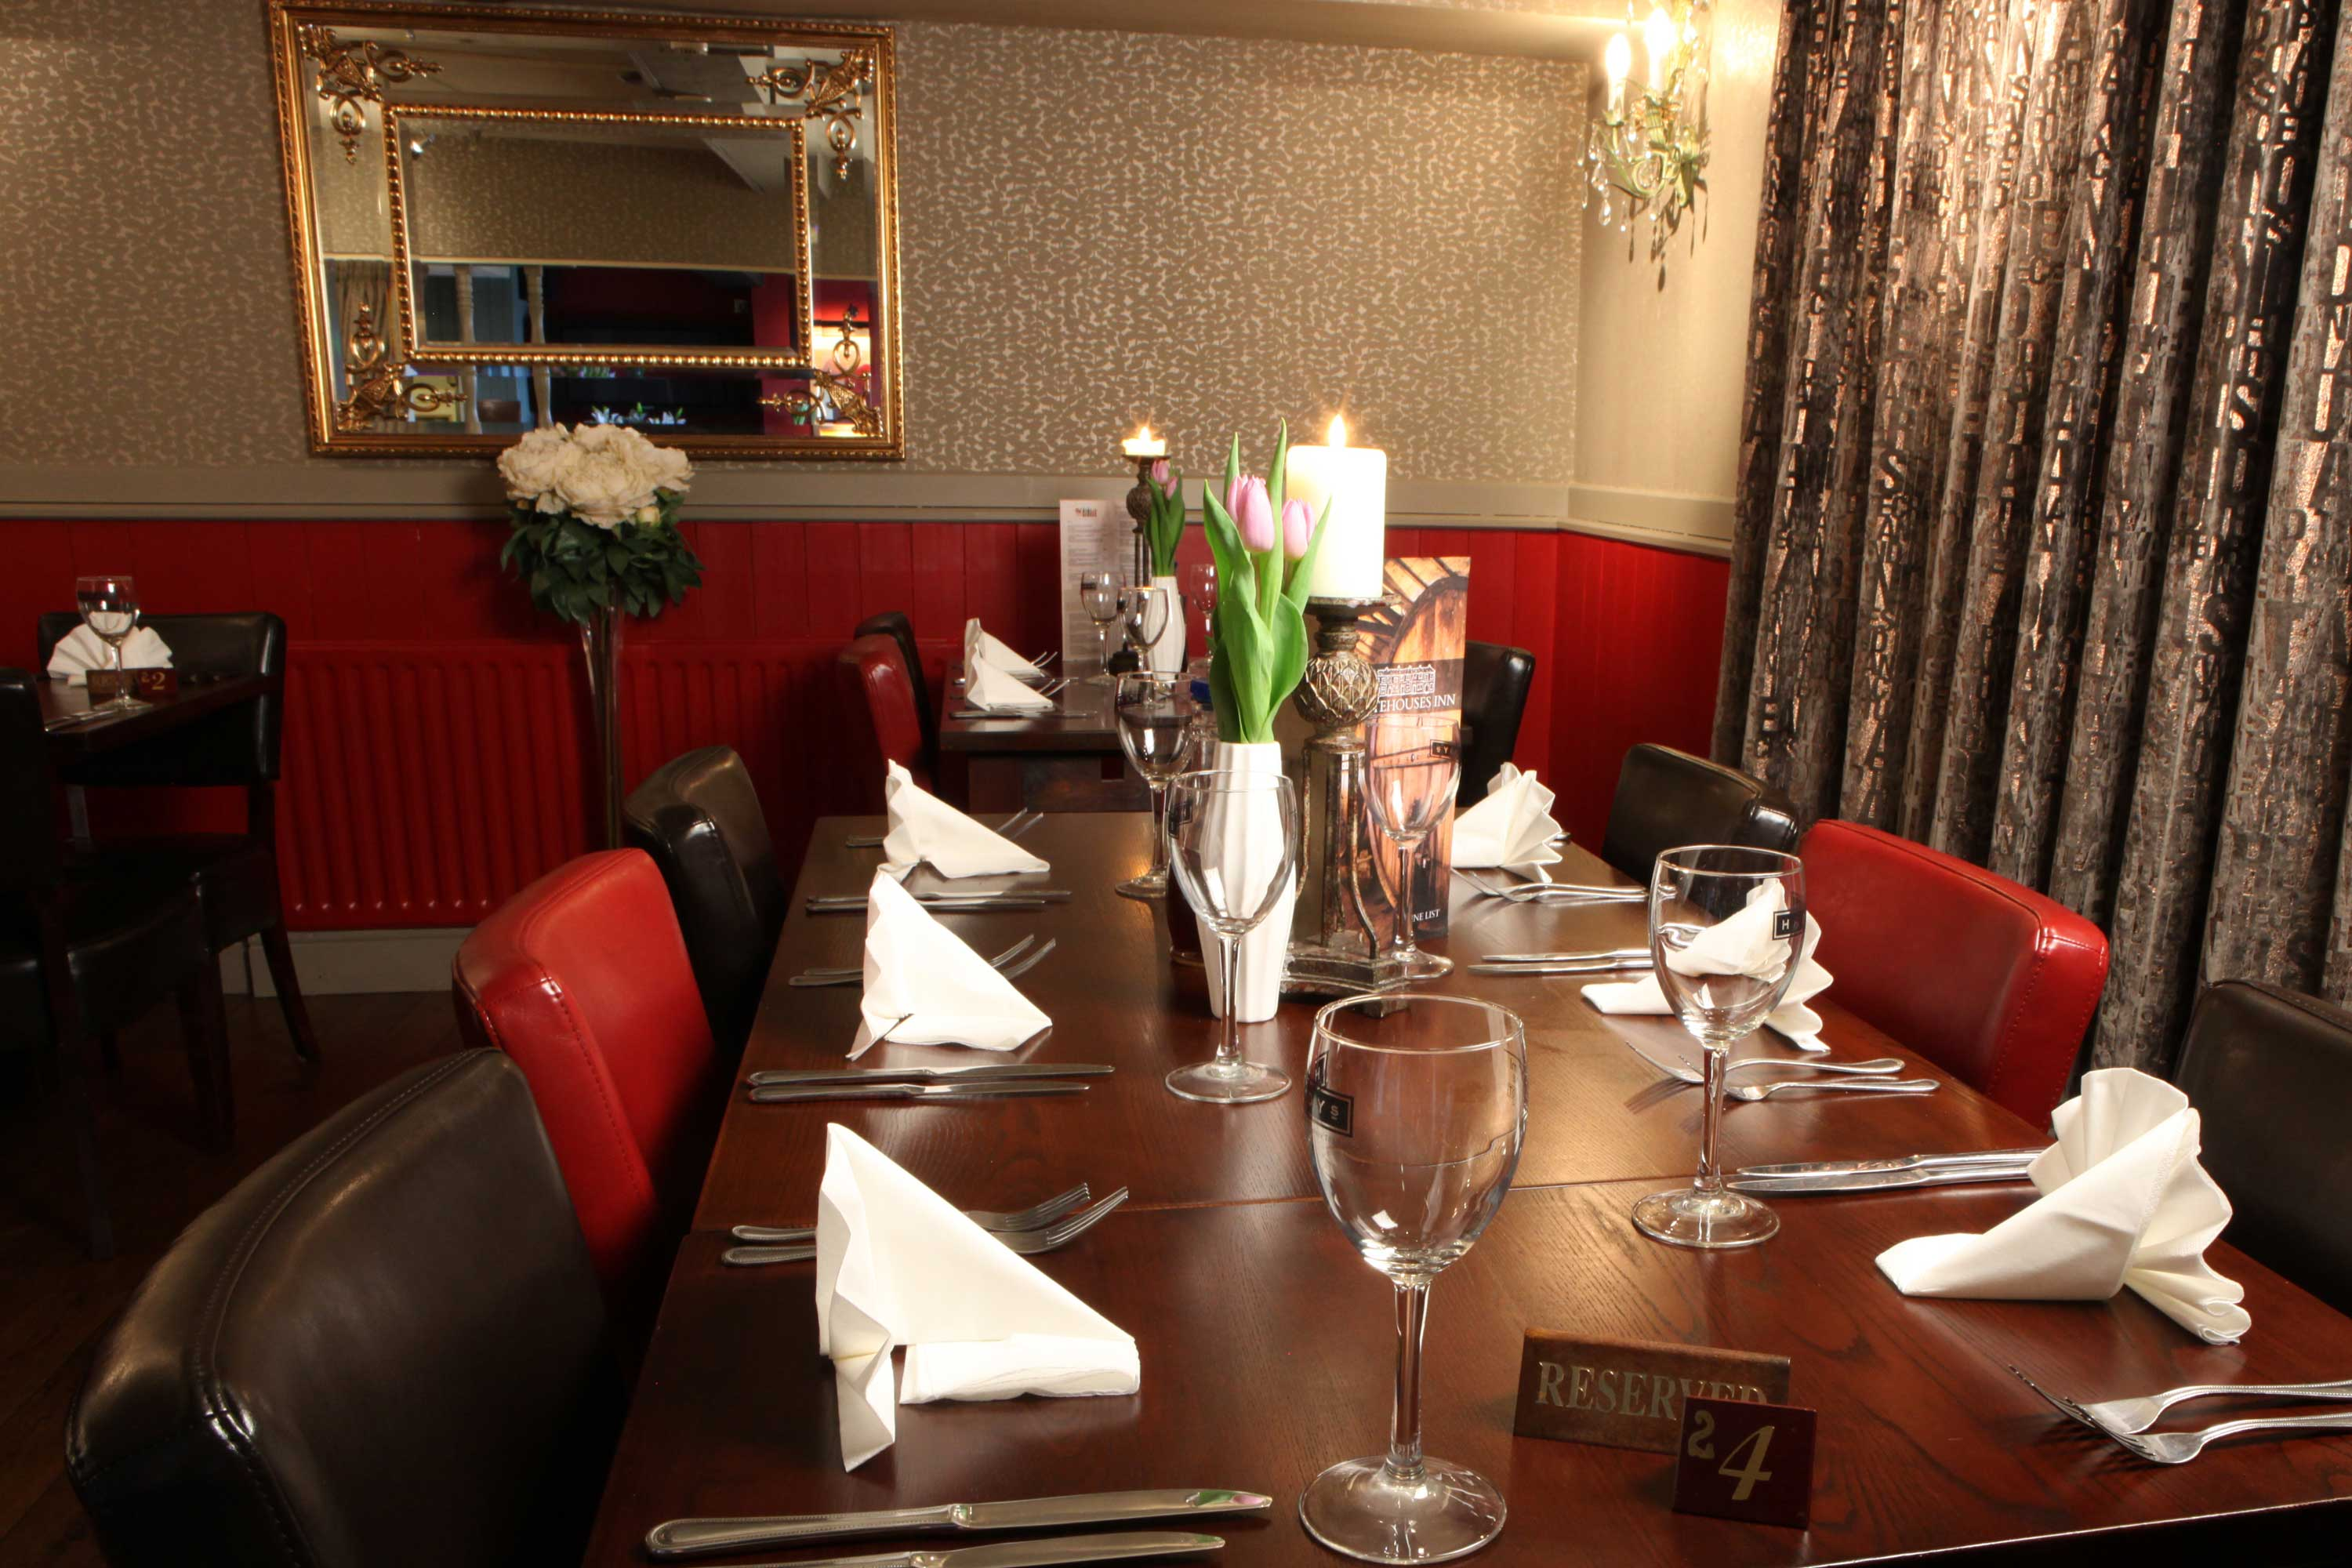 Celebrate at Whitehouses Inn Retford, we can cater for any party, function, event